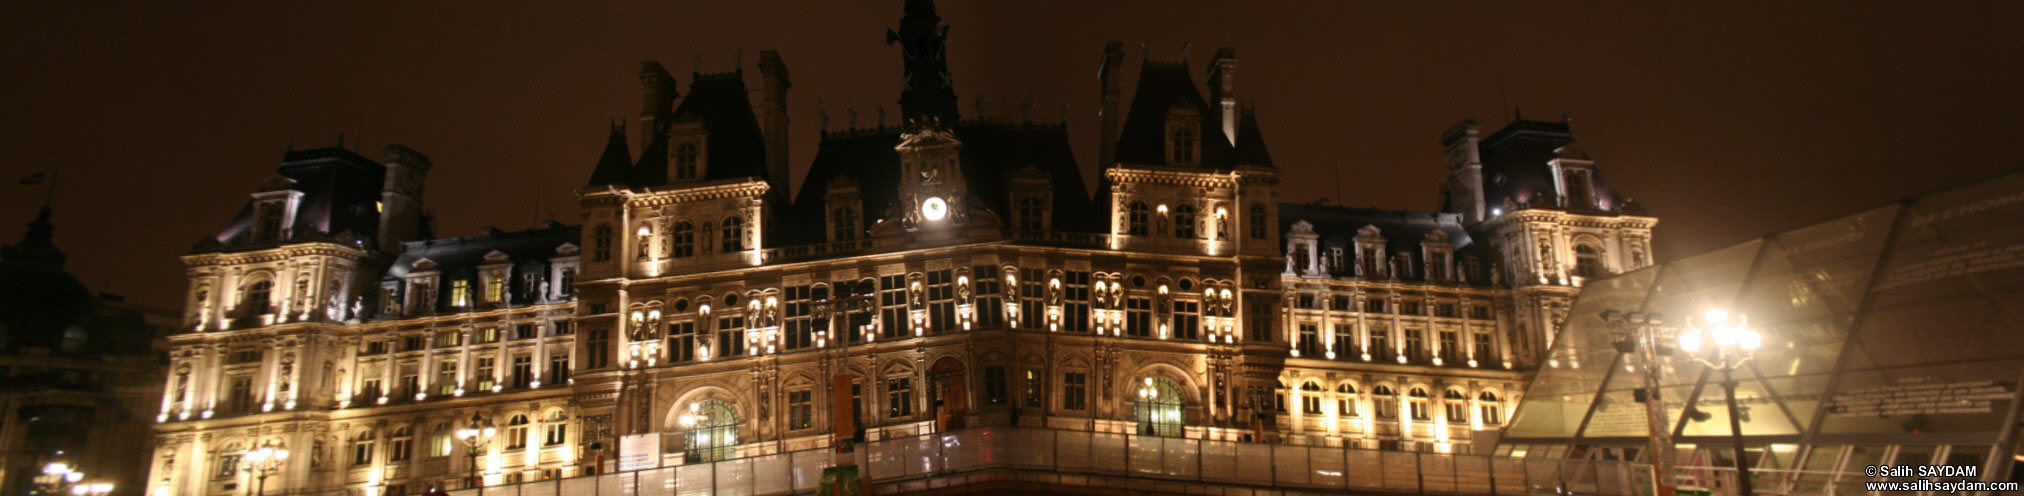 City Hall of Paris (Hôtel de Ville) Panorama 4 (At Night) (Paris, France)